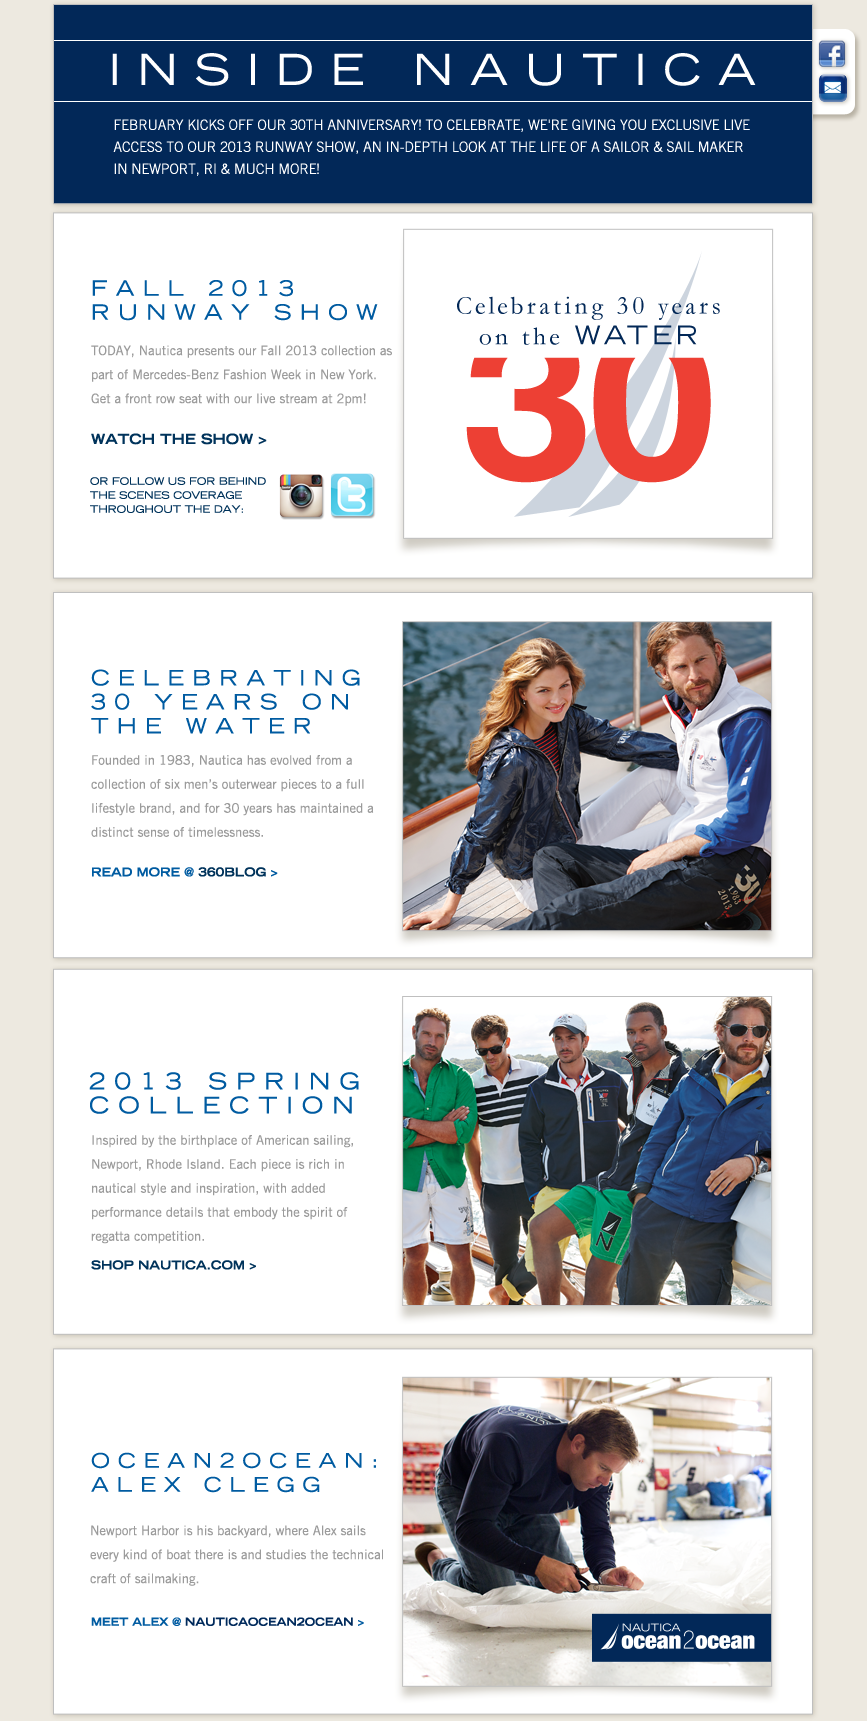 INSIDE NAUTICA: Celebrating 30 years on the water.